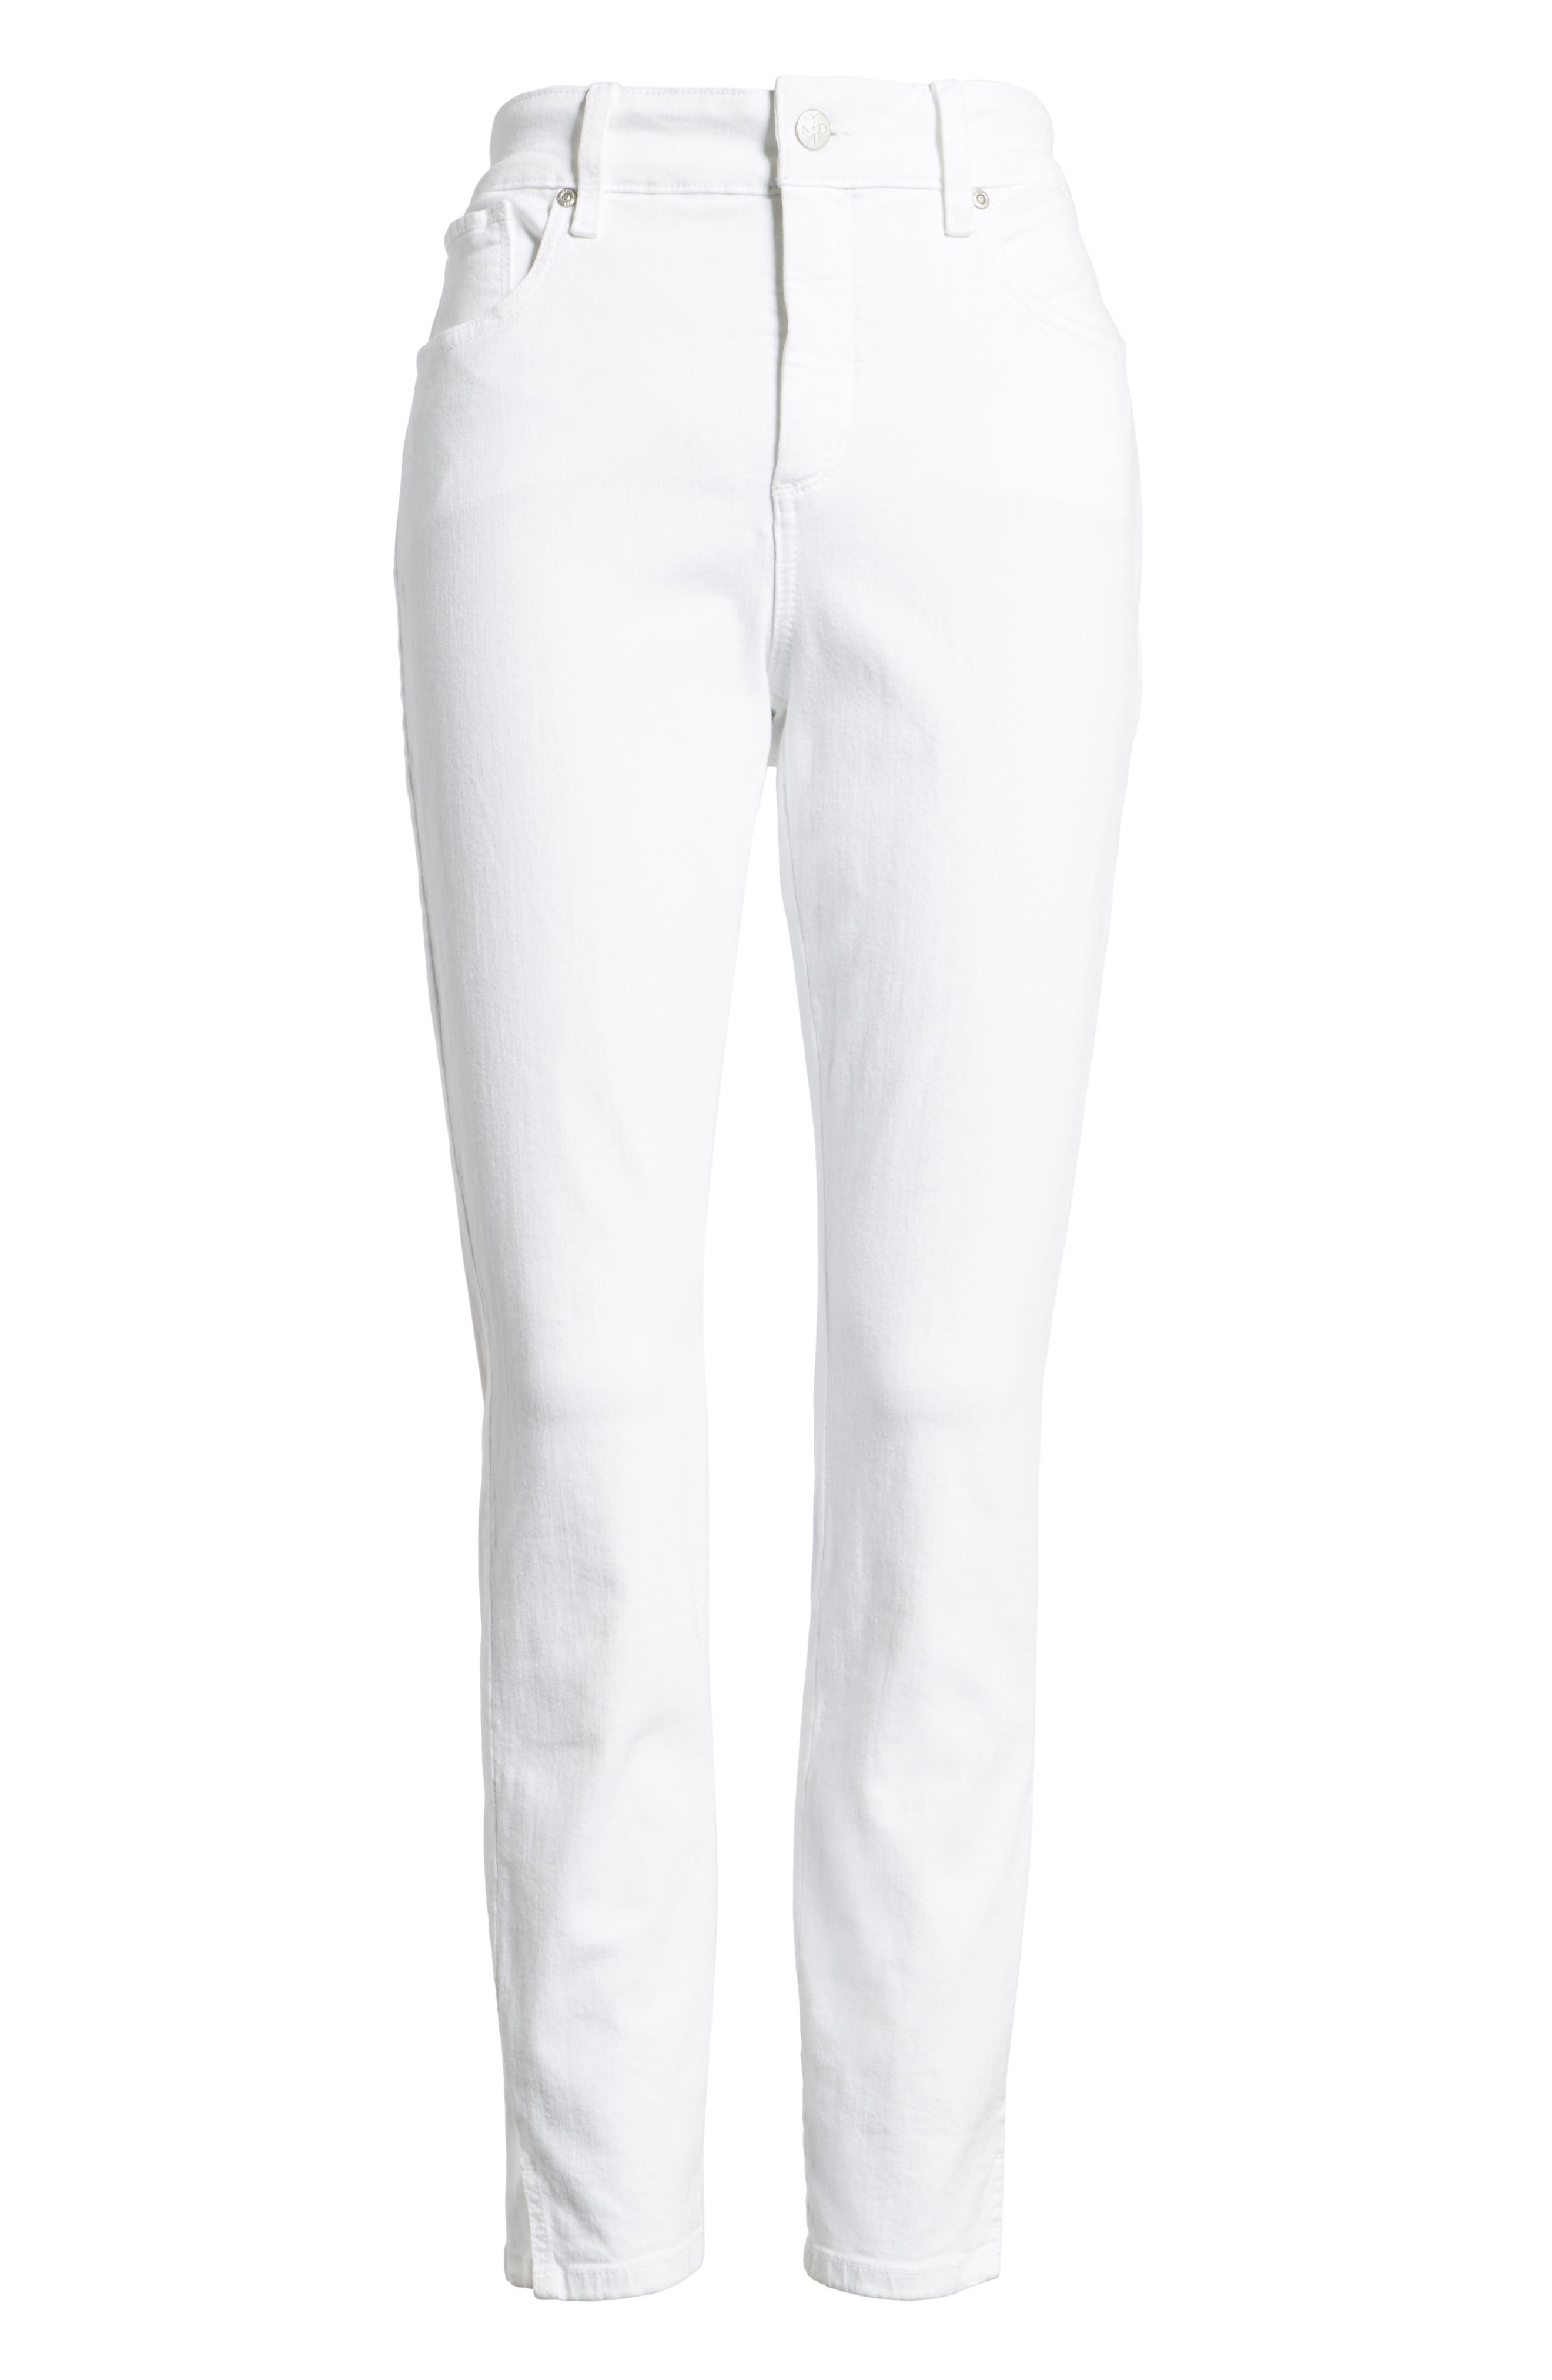 Ami Stretch Ankle Skinny Jeans,                             Alternate thumbnail 7, color,                             Optic White